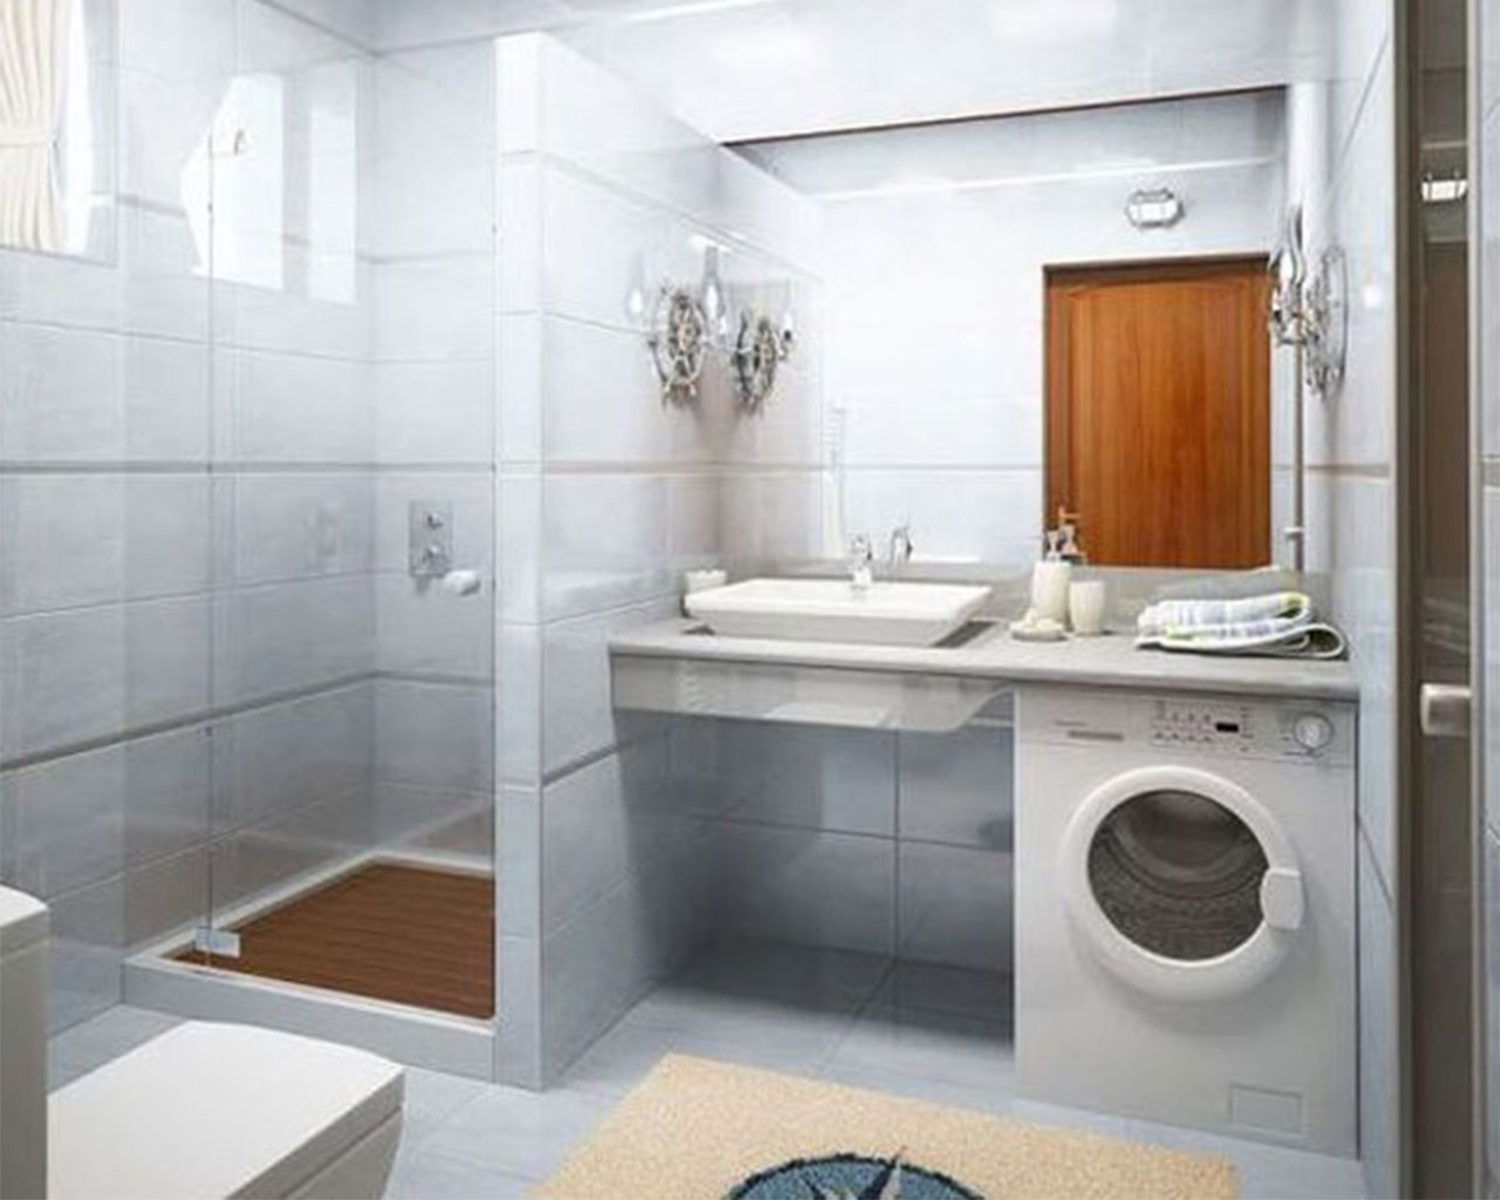 Simple Bathroom Design Idea With Washing Machine Id682 - Small ...